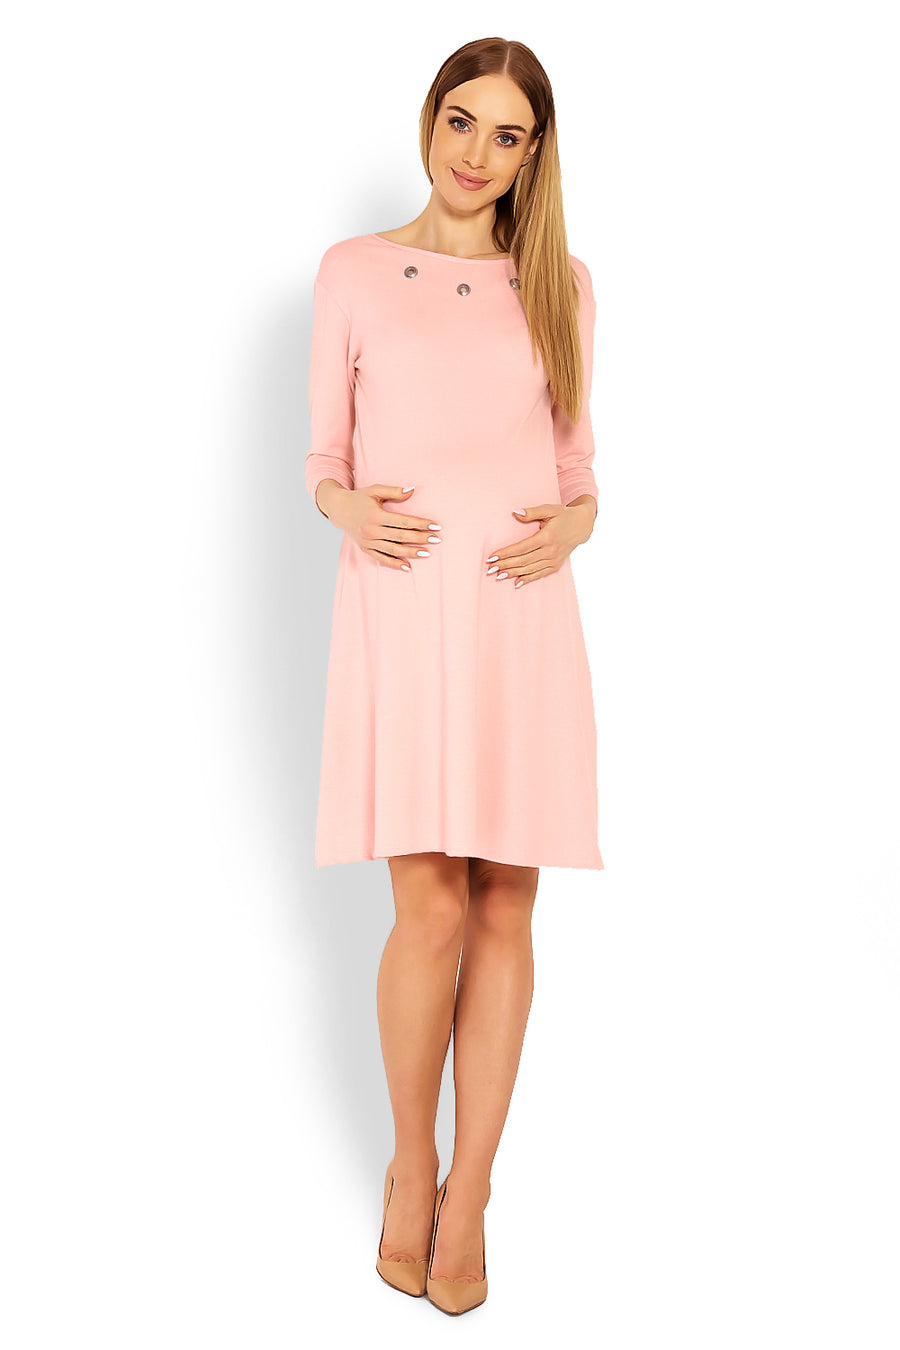 Pregnancy dress model 114553 PeeKaBoo